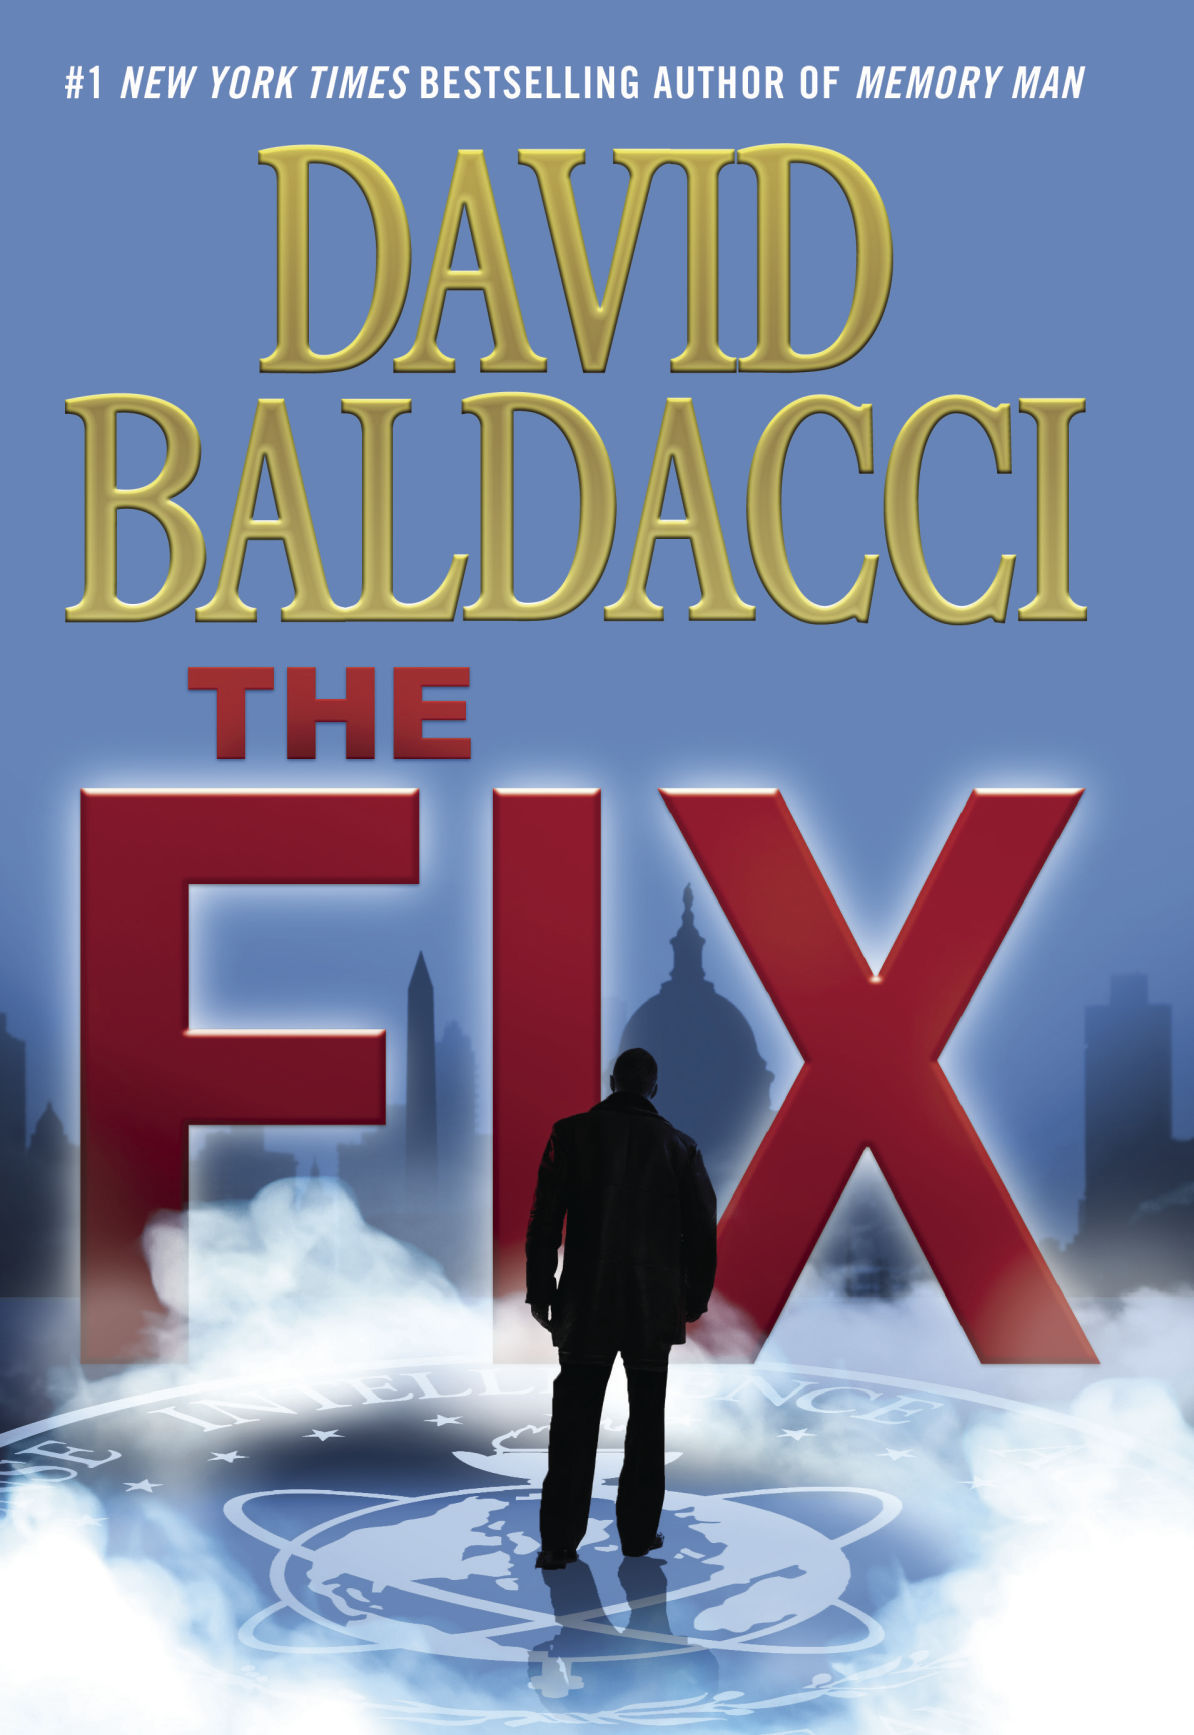 David Baldacci to appear at National